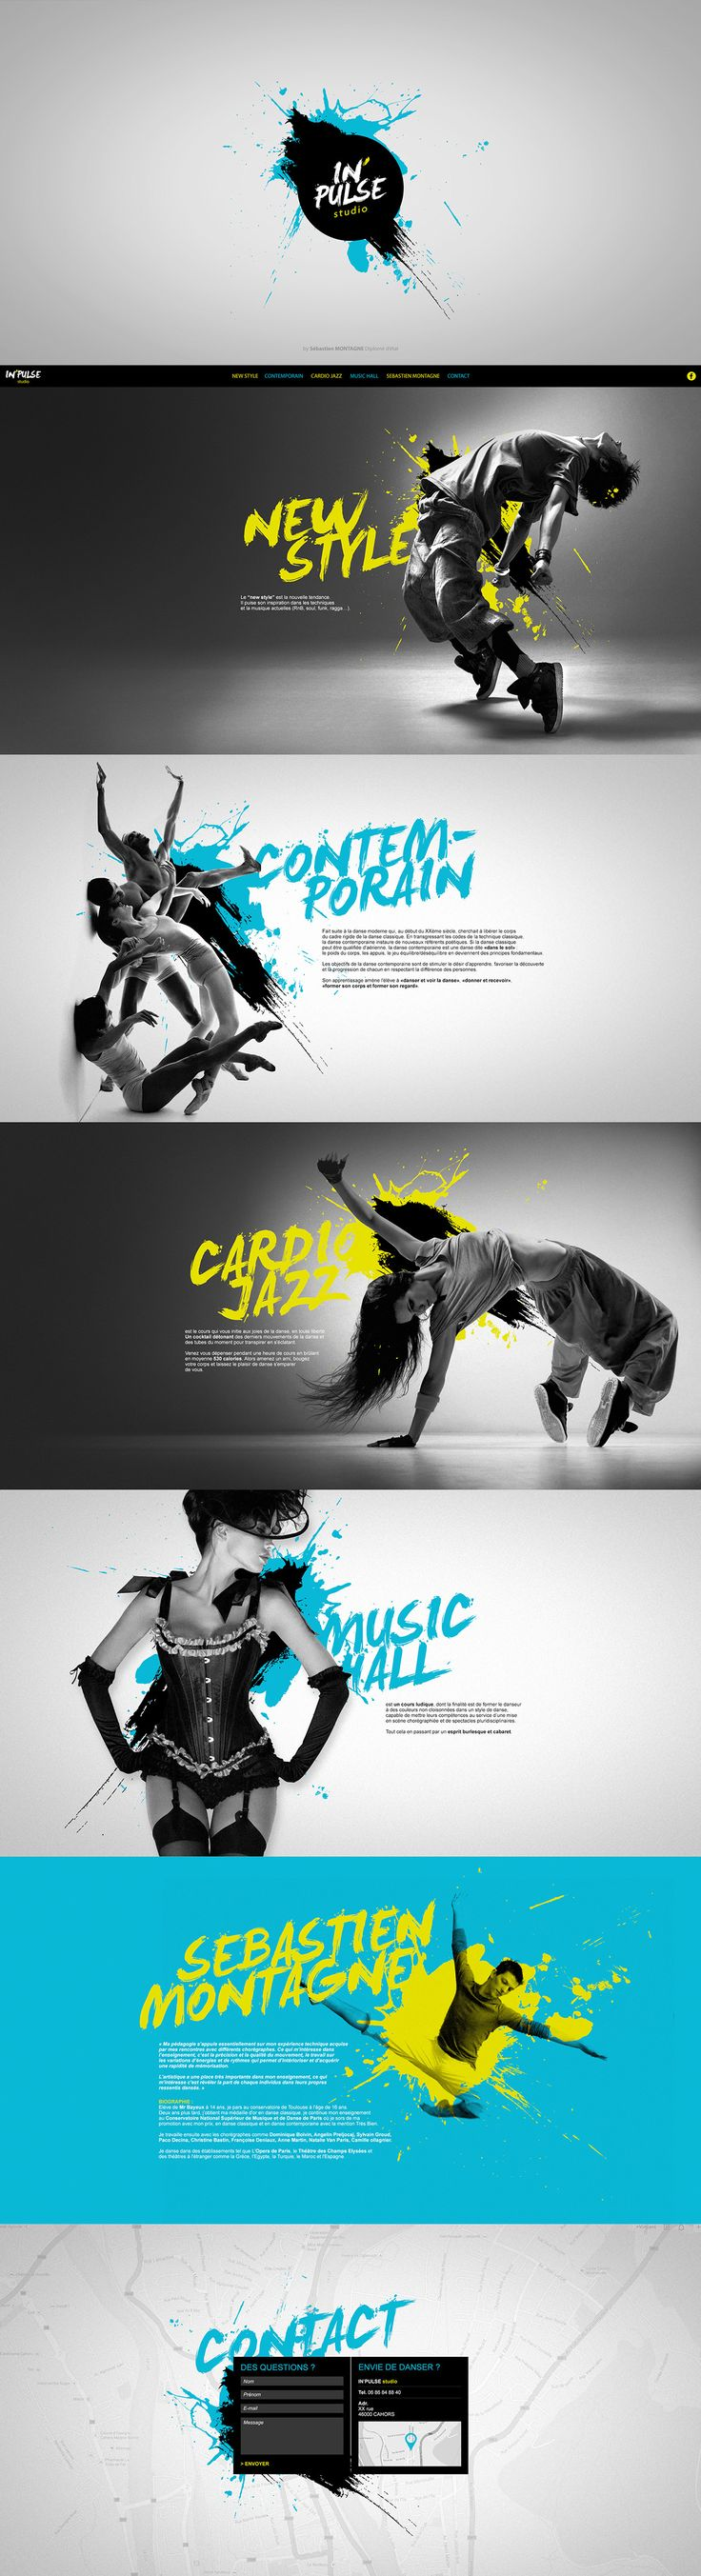 IN'PULSE studio on Behance #snevi #website #site #web #artdirection #onepagesite #sebastienmontagne #inpulsestudio #dance #danse #dancestudio #contemporain #jazz #cardio #cardiojazz #musichall #newstyle #artwork